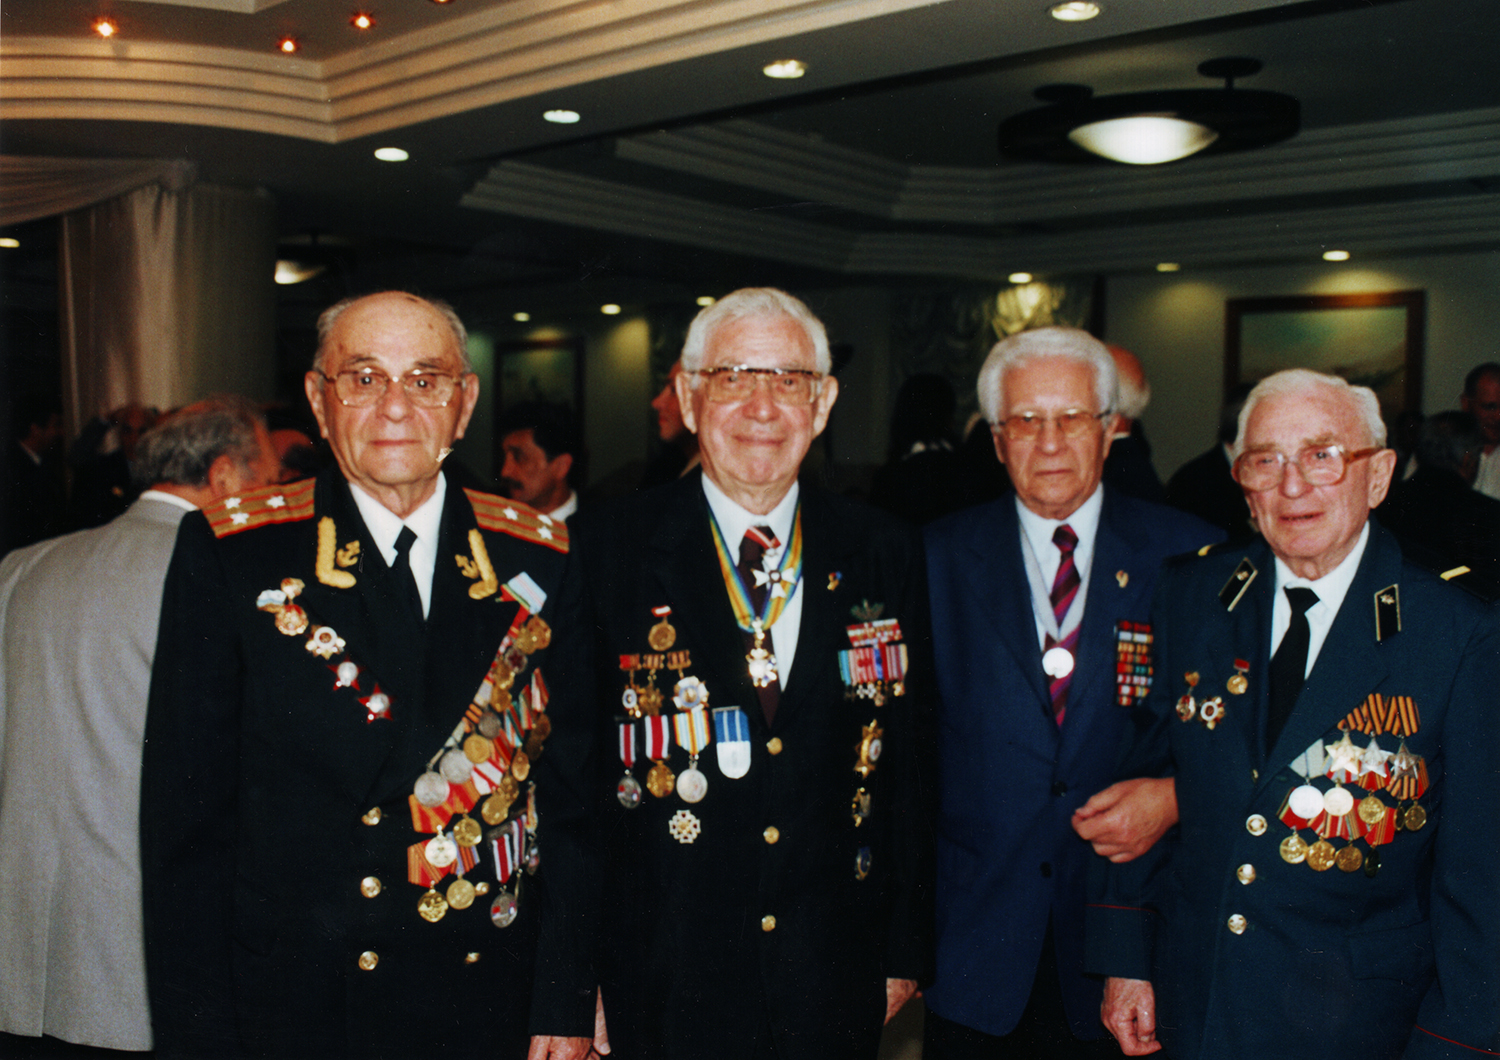 Yagel, second from left, President of the Israel Association of Disabled Veterans